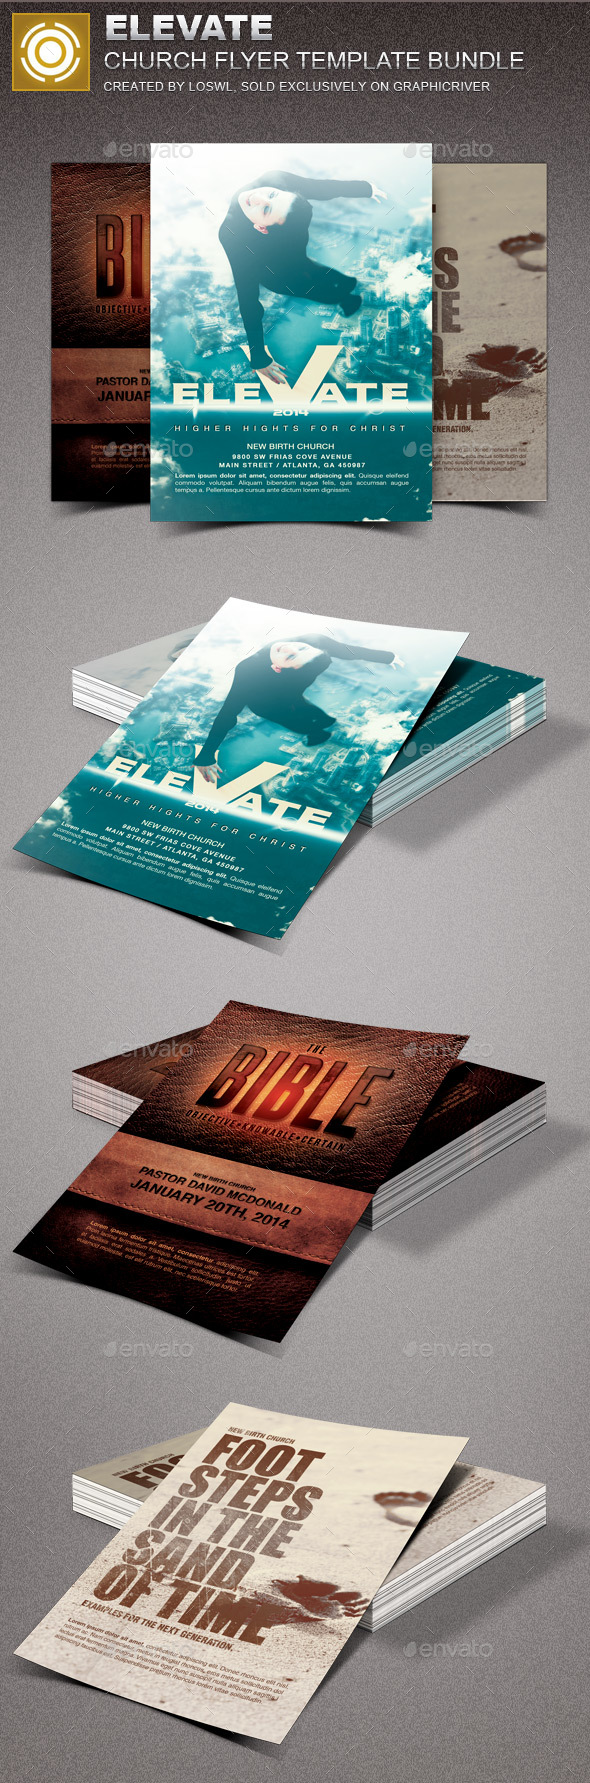 Elevate Church Marketing Flyer Template Bundle - Church Flyers